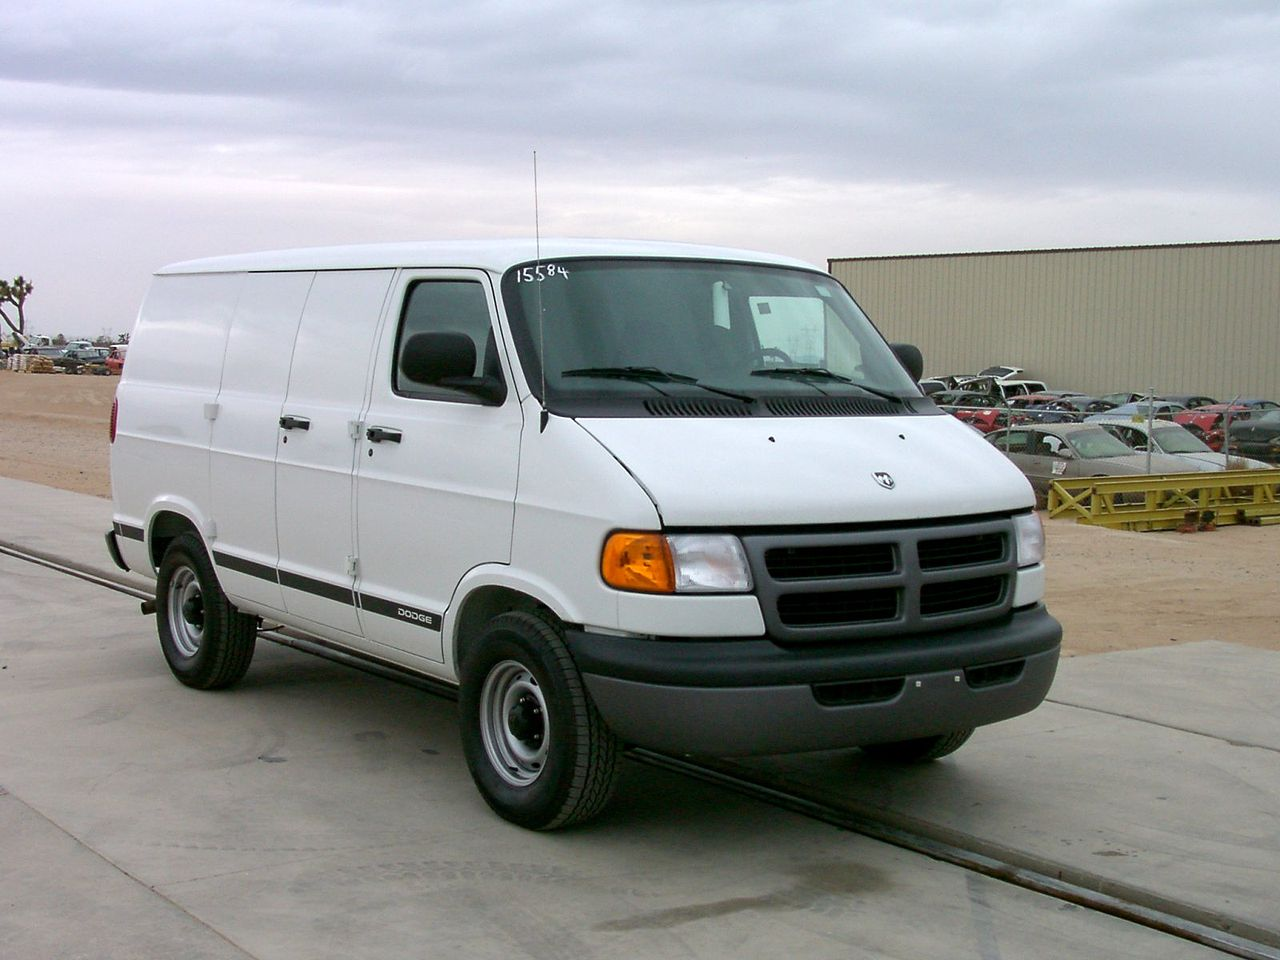 file 2001 dodge ram 1500 van nhtsa wikimedia. Black Bedroom Furniture Sets. Home Design Ideas